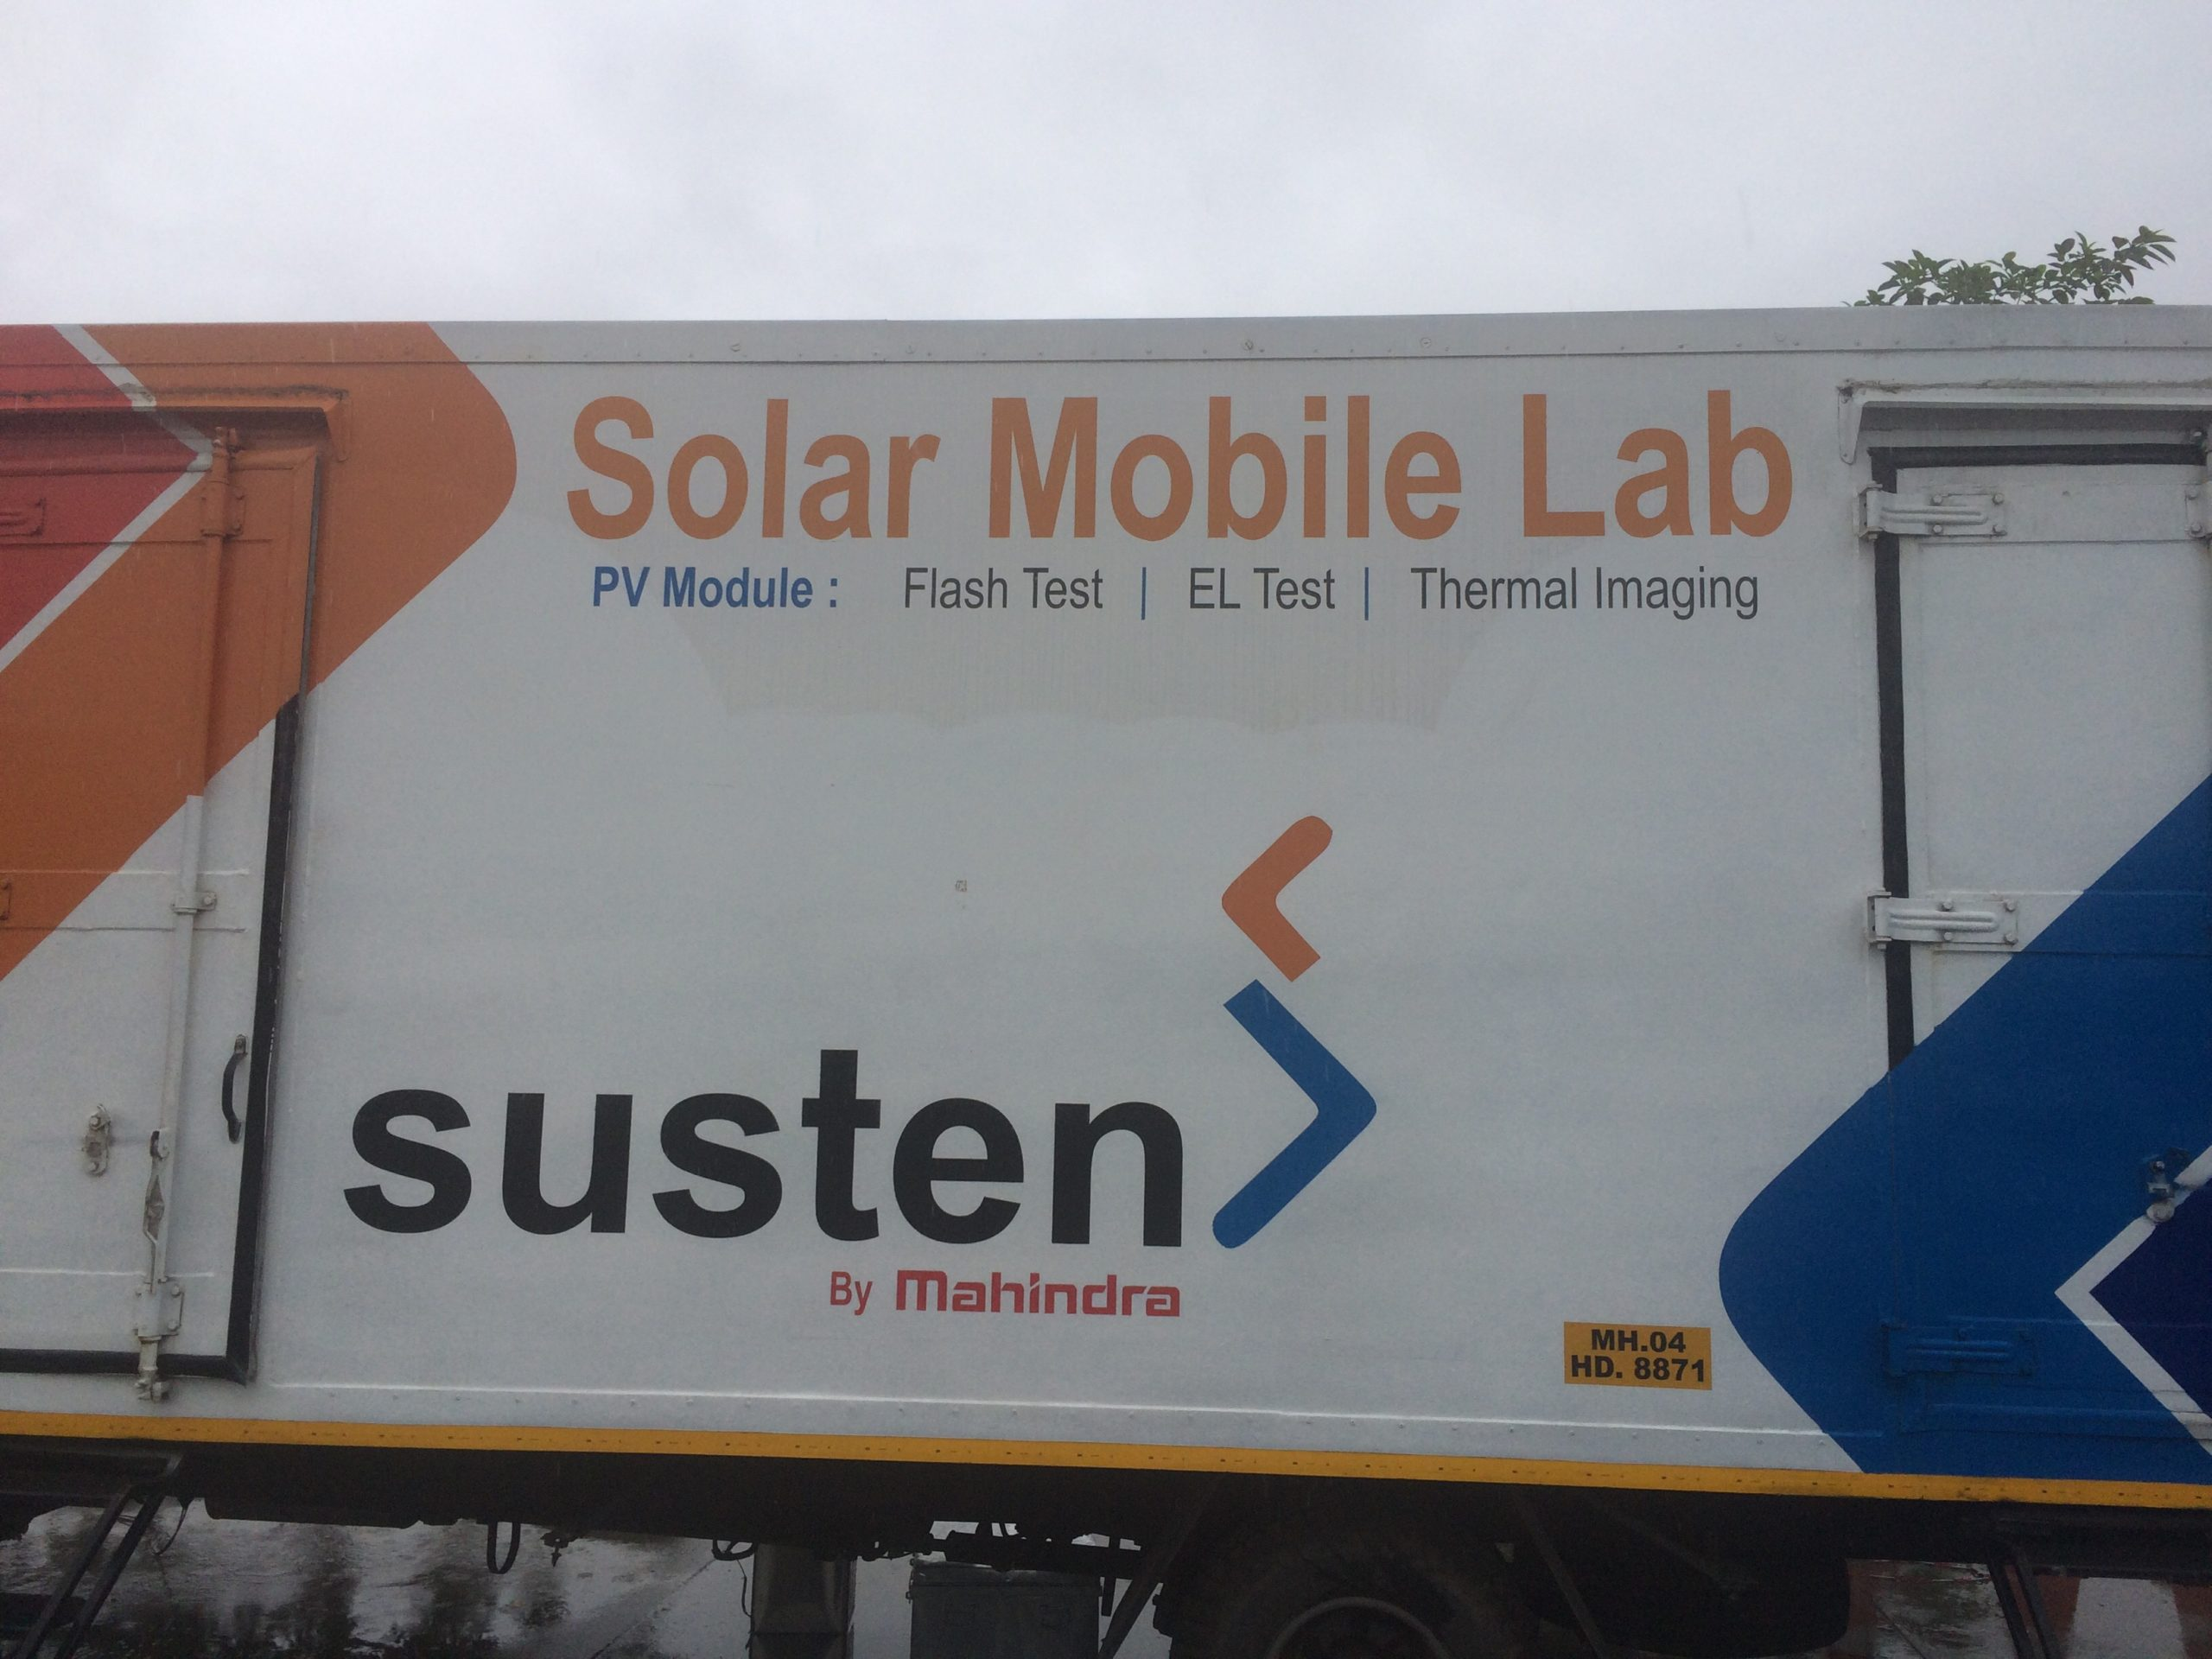 Some solar projects in India have seen module performance drop 10% in first year or 8% in the third year alone, according to Mahindra Susten field tests. Credit: Tom Kenning